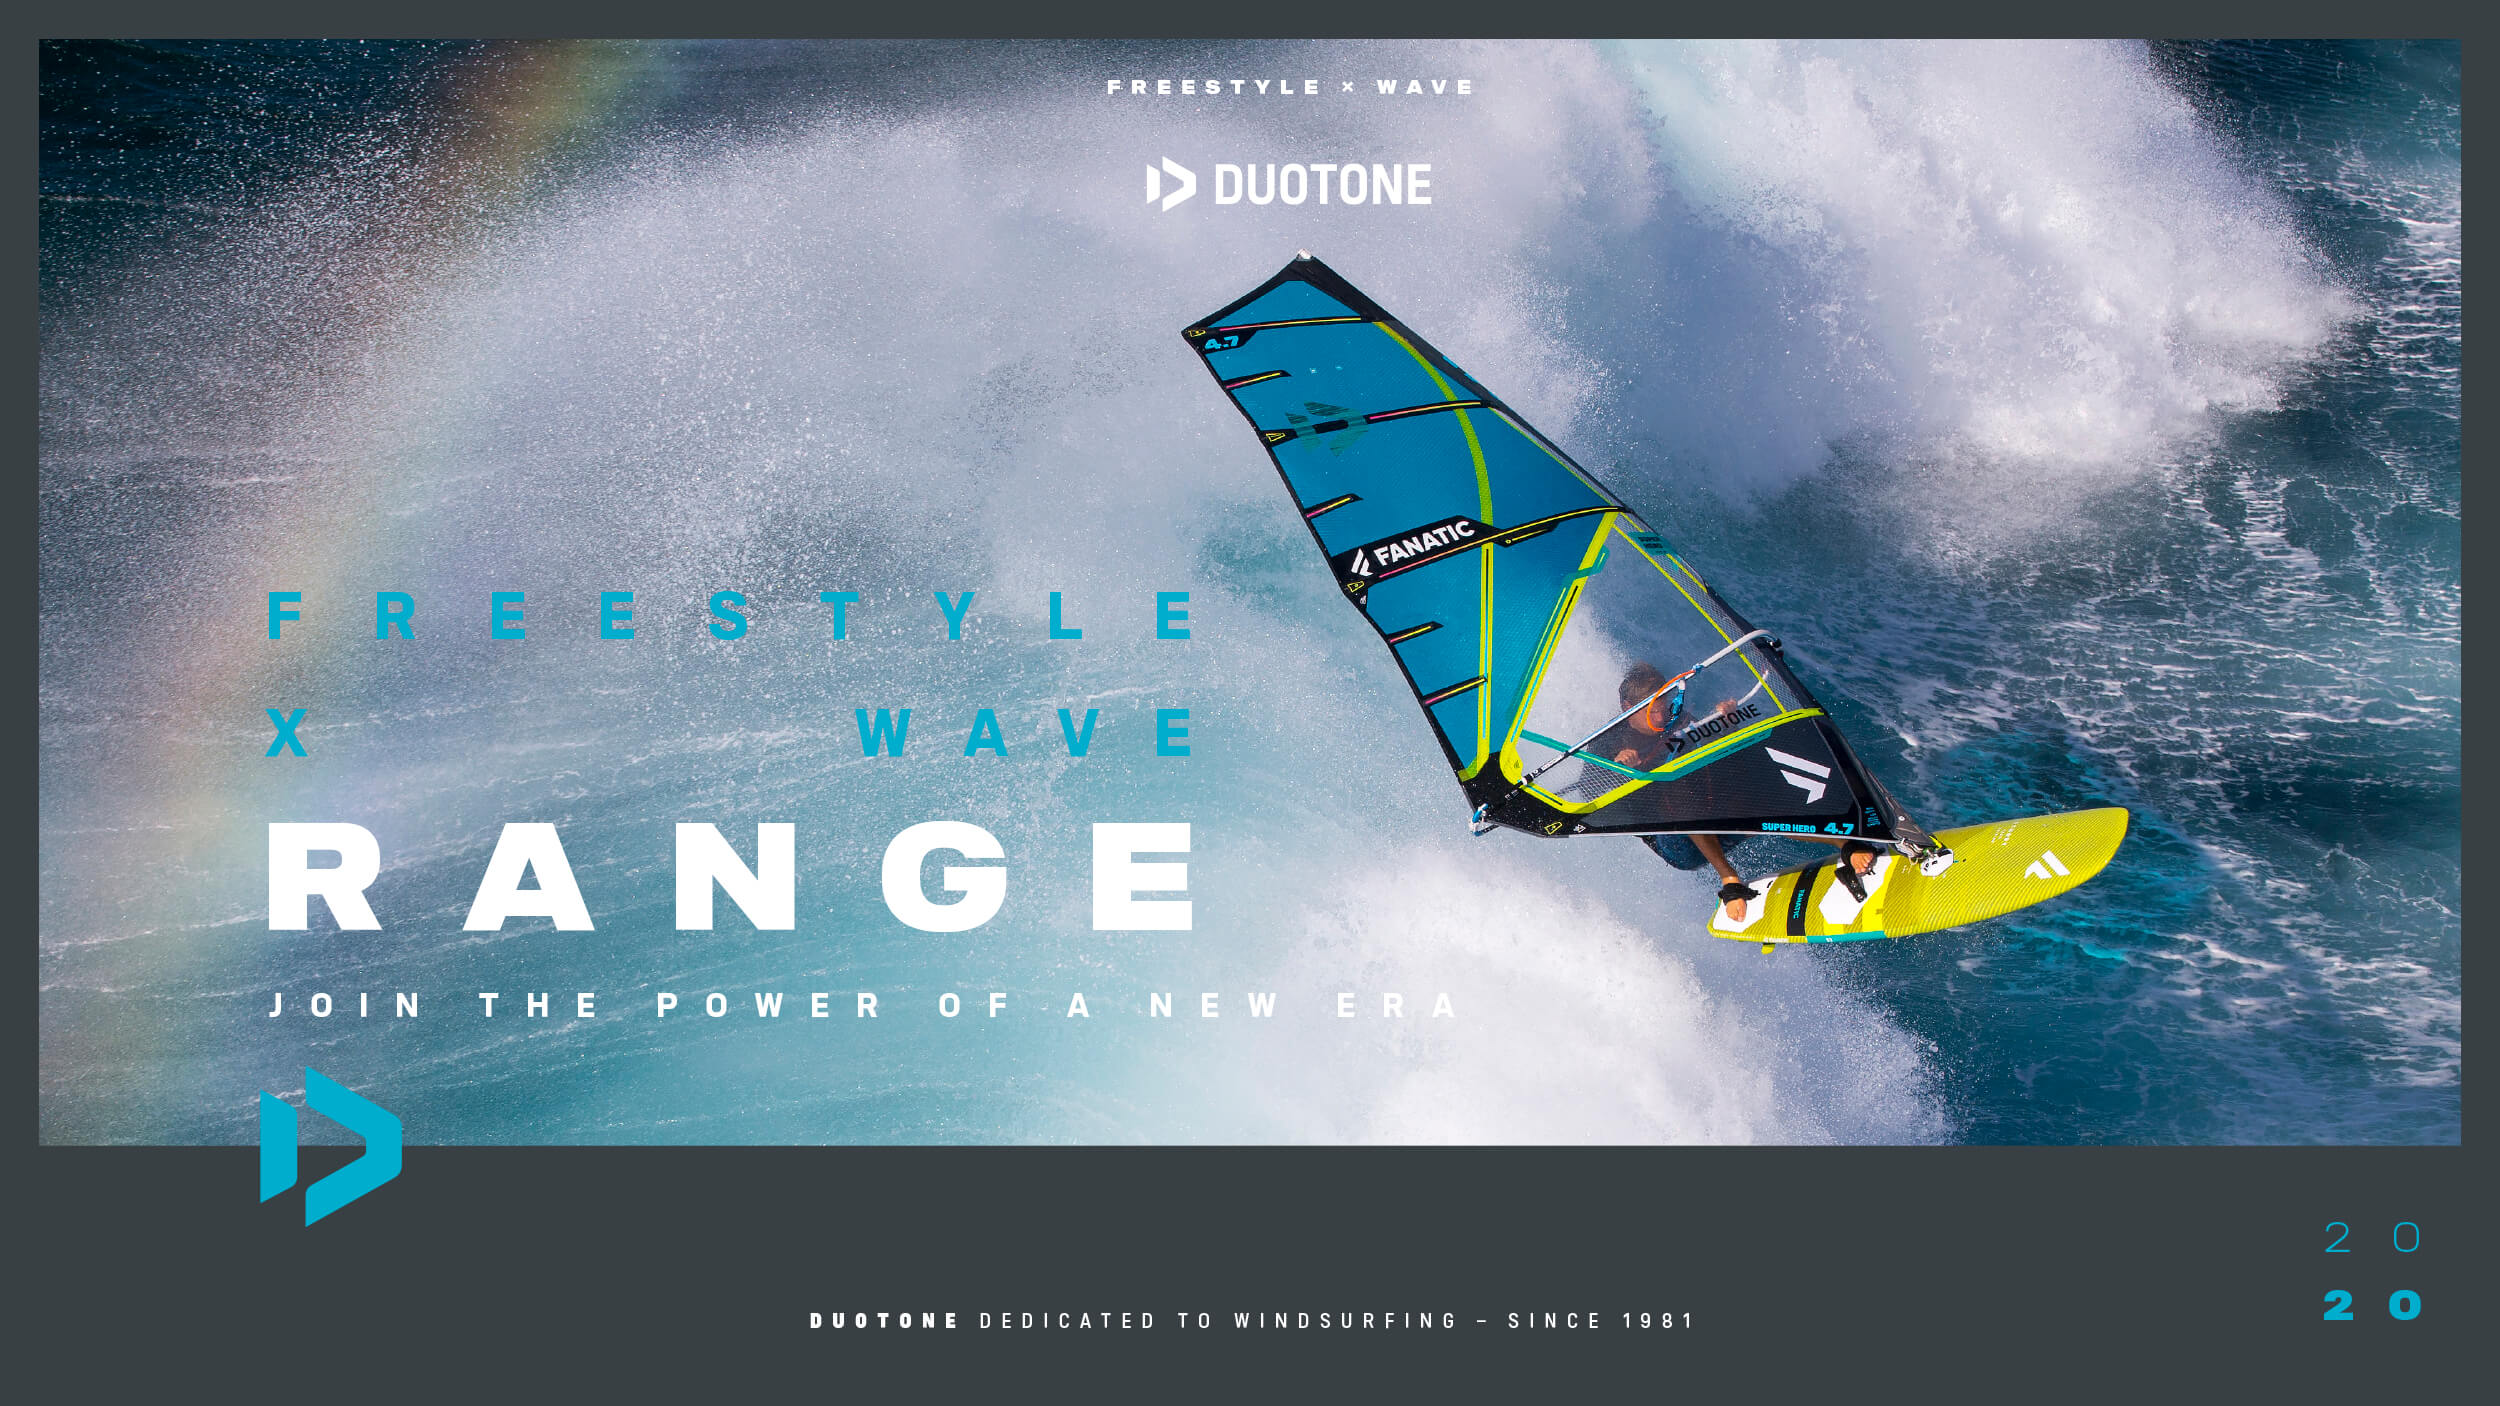 Duotone Windsurfing Freestyle Wave Range 2020